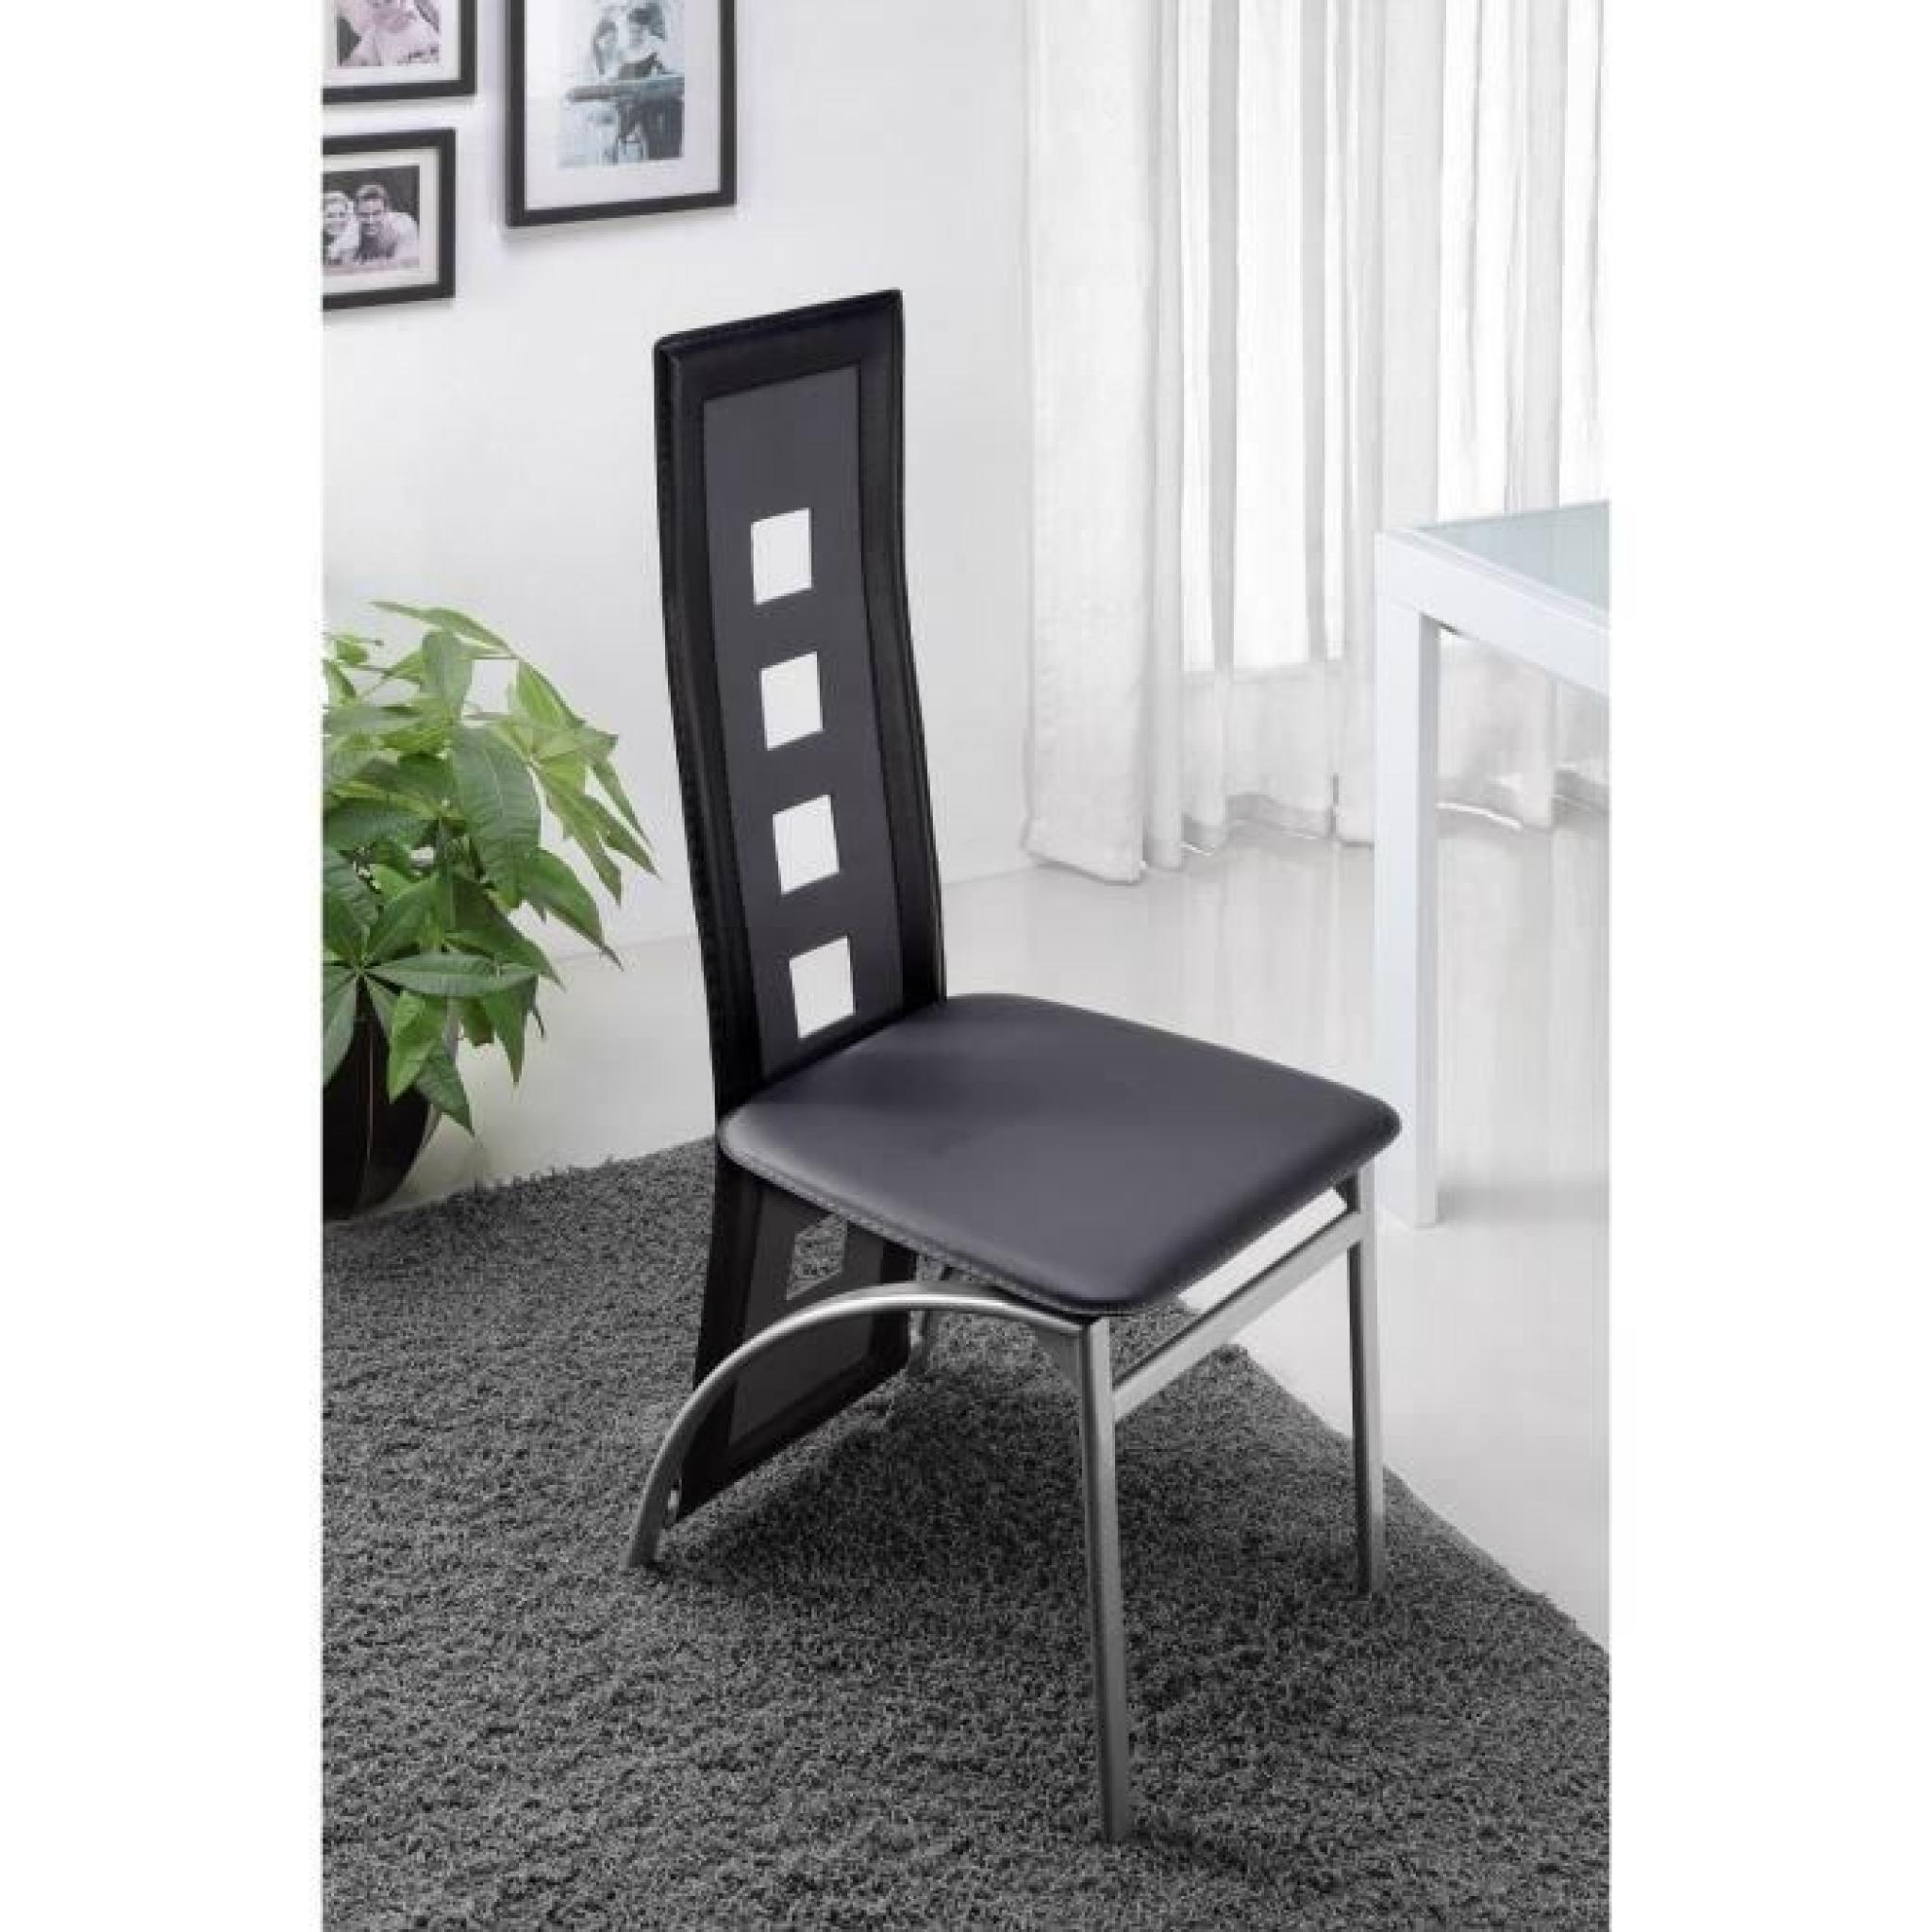 eiffel lot de 6 chaises de salle manger noires et blanches simili et aluminium design. Black Bedroom Furniture Sets. Home Design Ideas